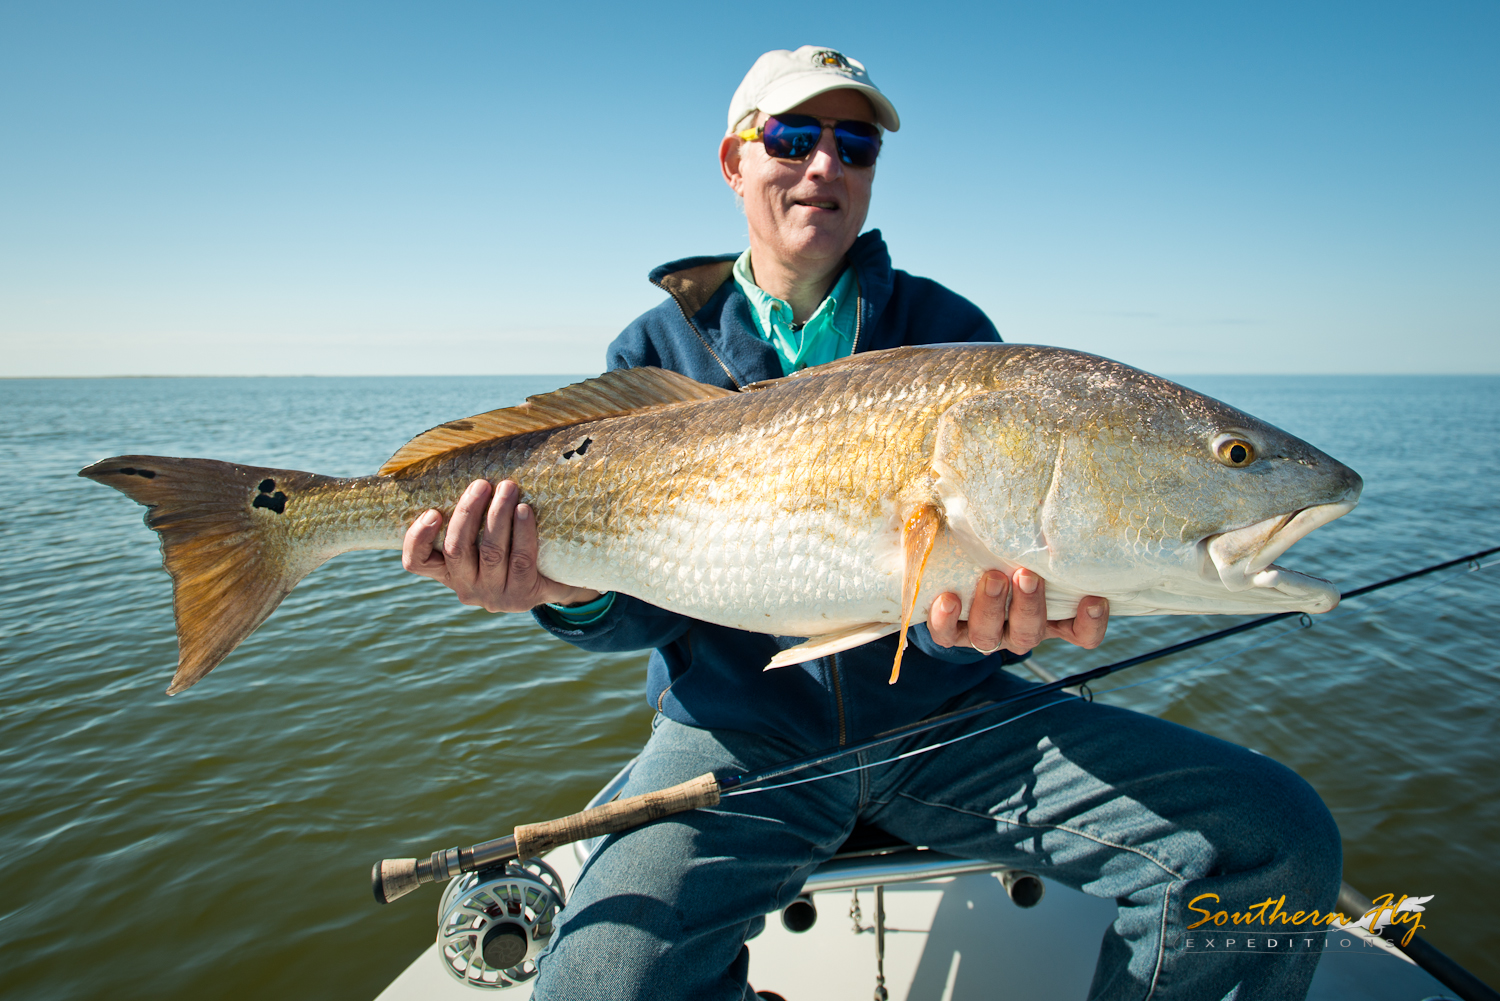 Southern Fly Expeditions